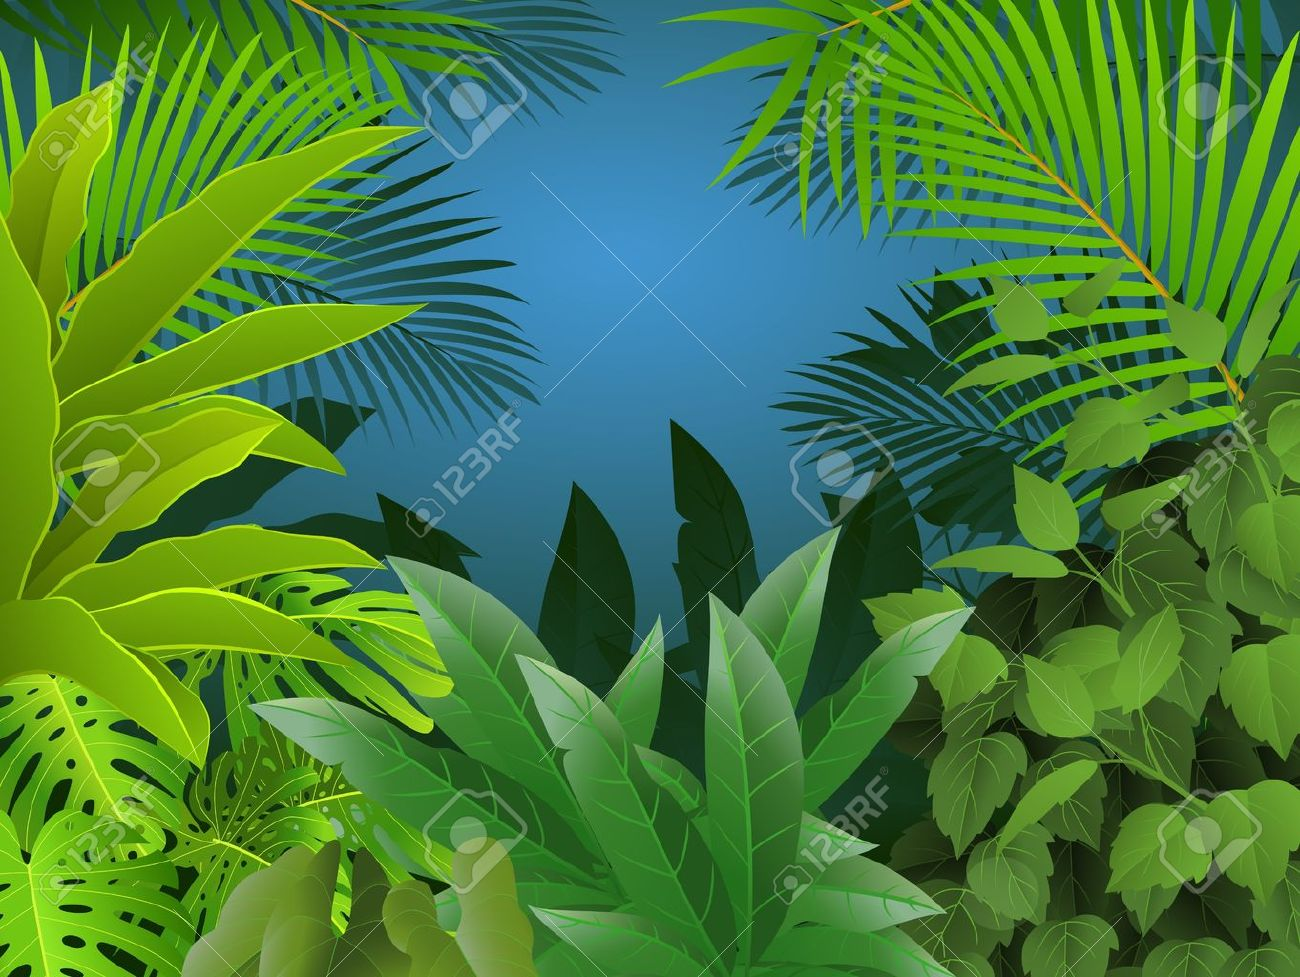 Tropical forest background - 13781441